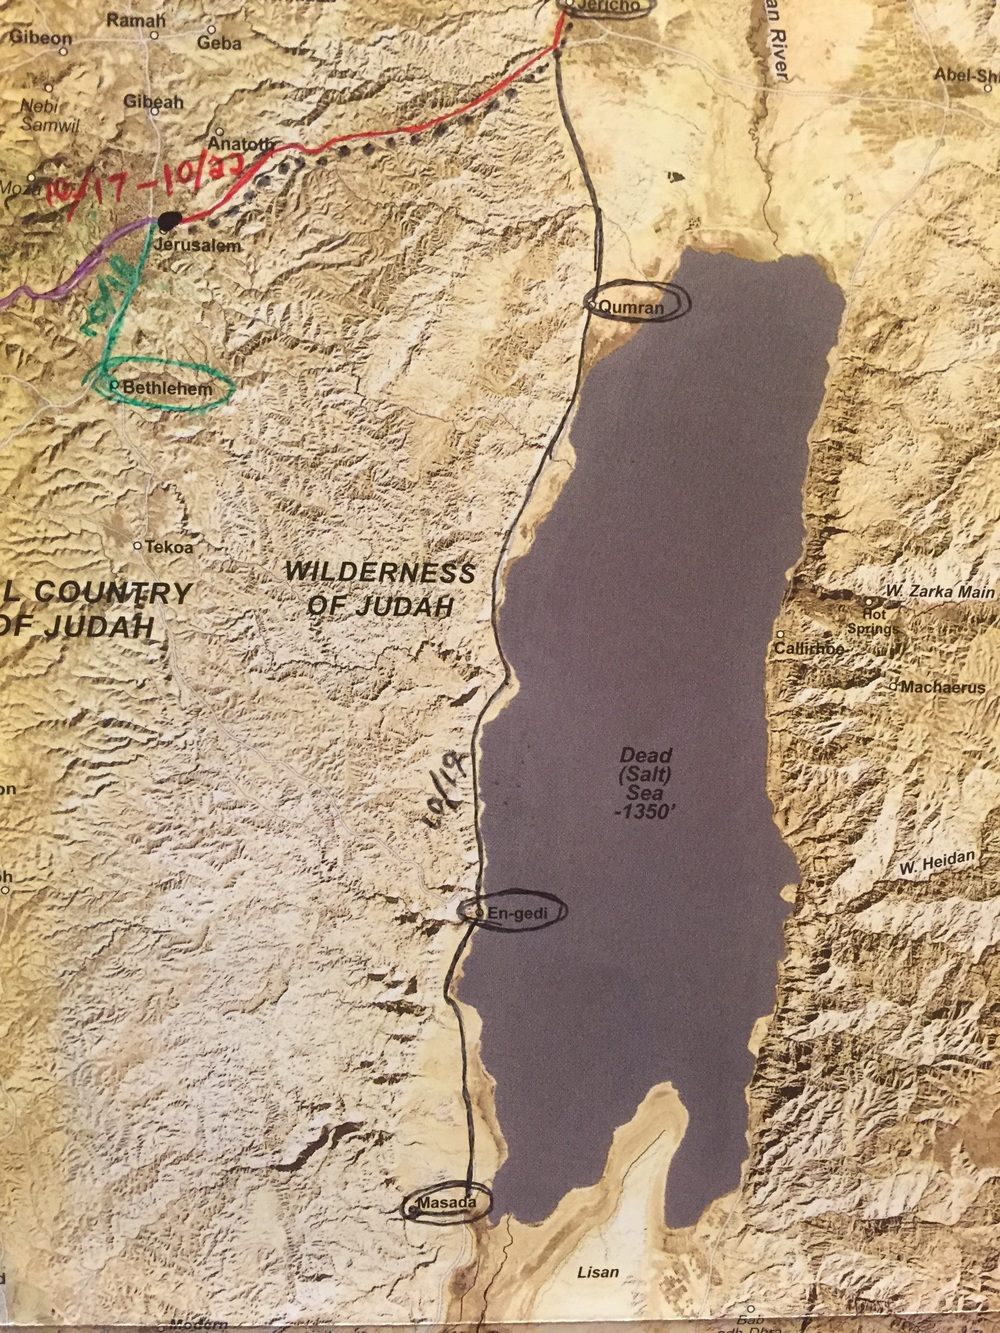 Today we traveled the western side of of the Dead Sea.